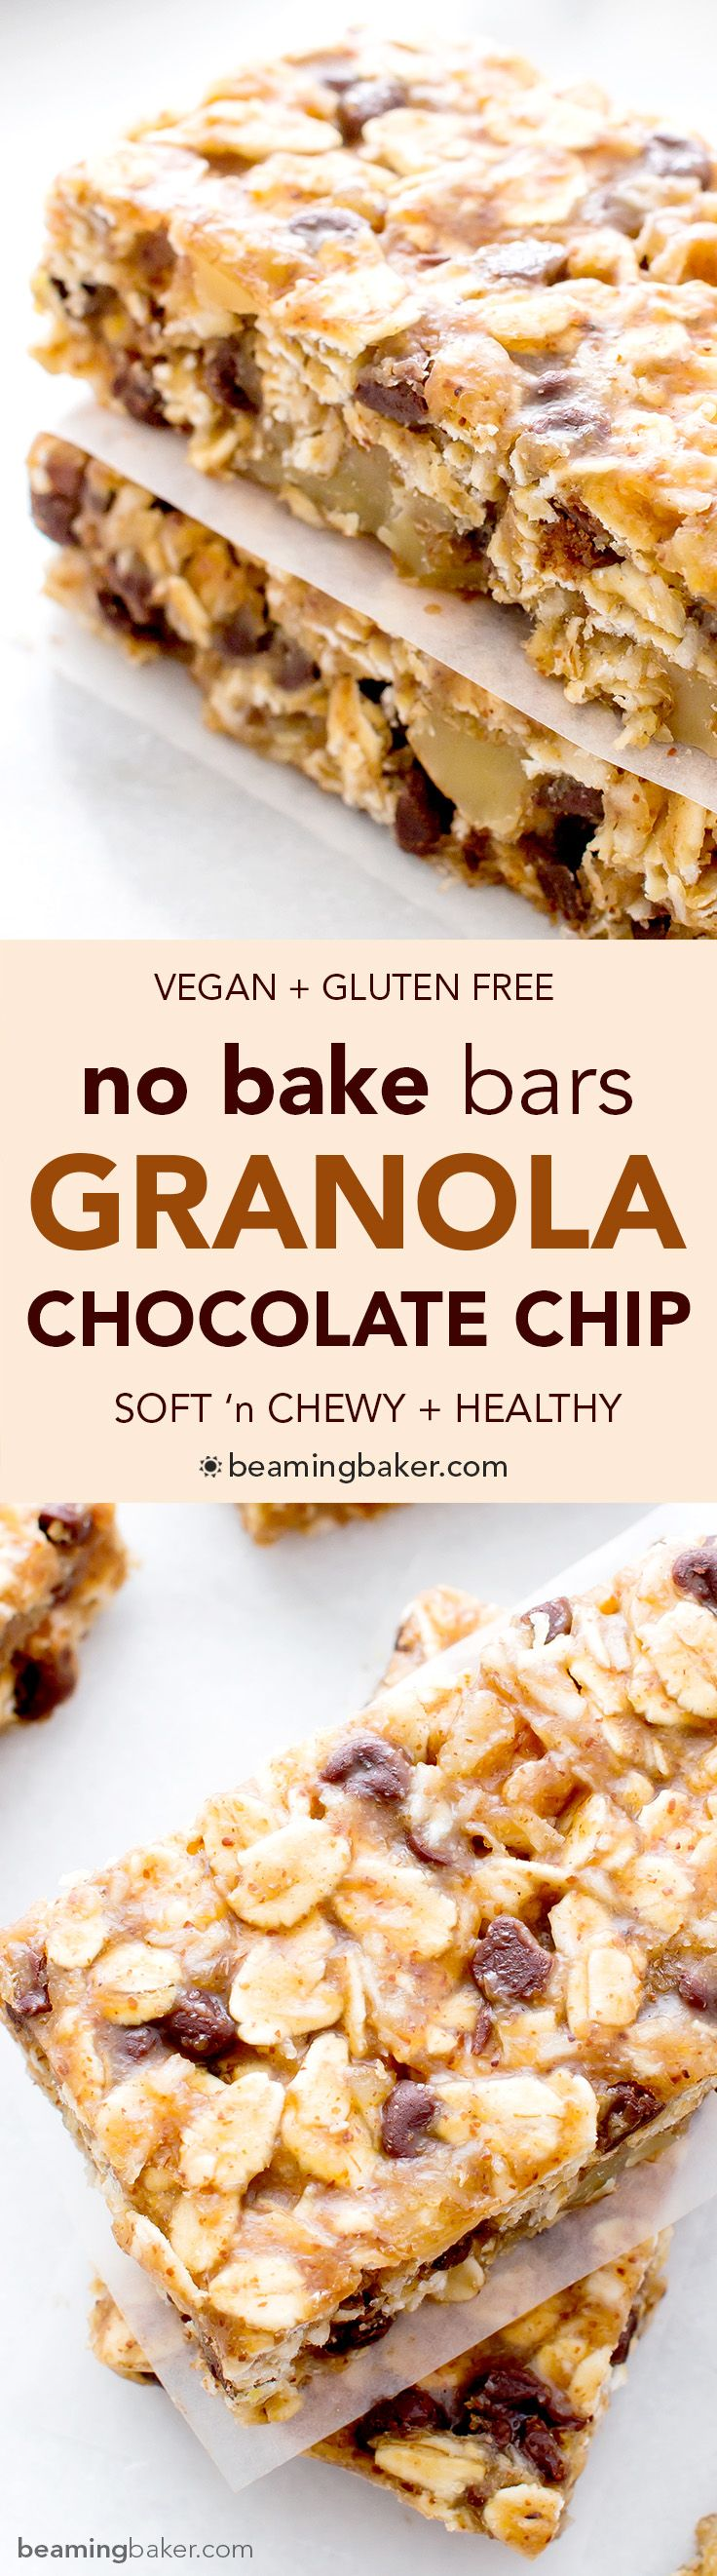 no bake chewy chocolate chip granola bars vegan gluten free no bake ...